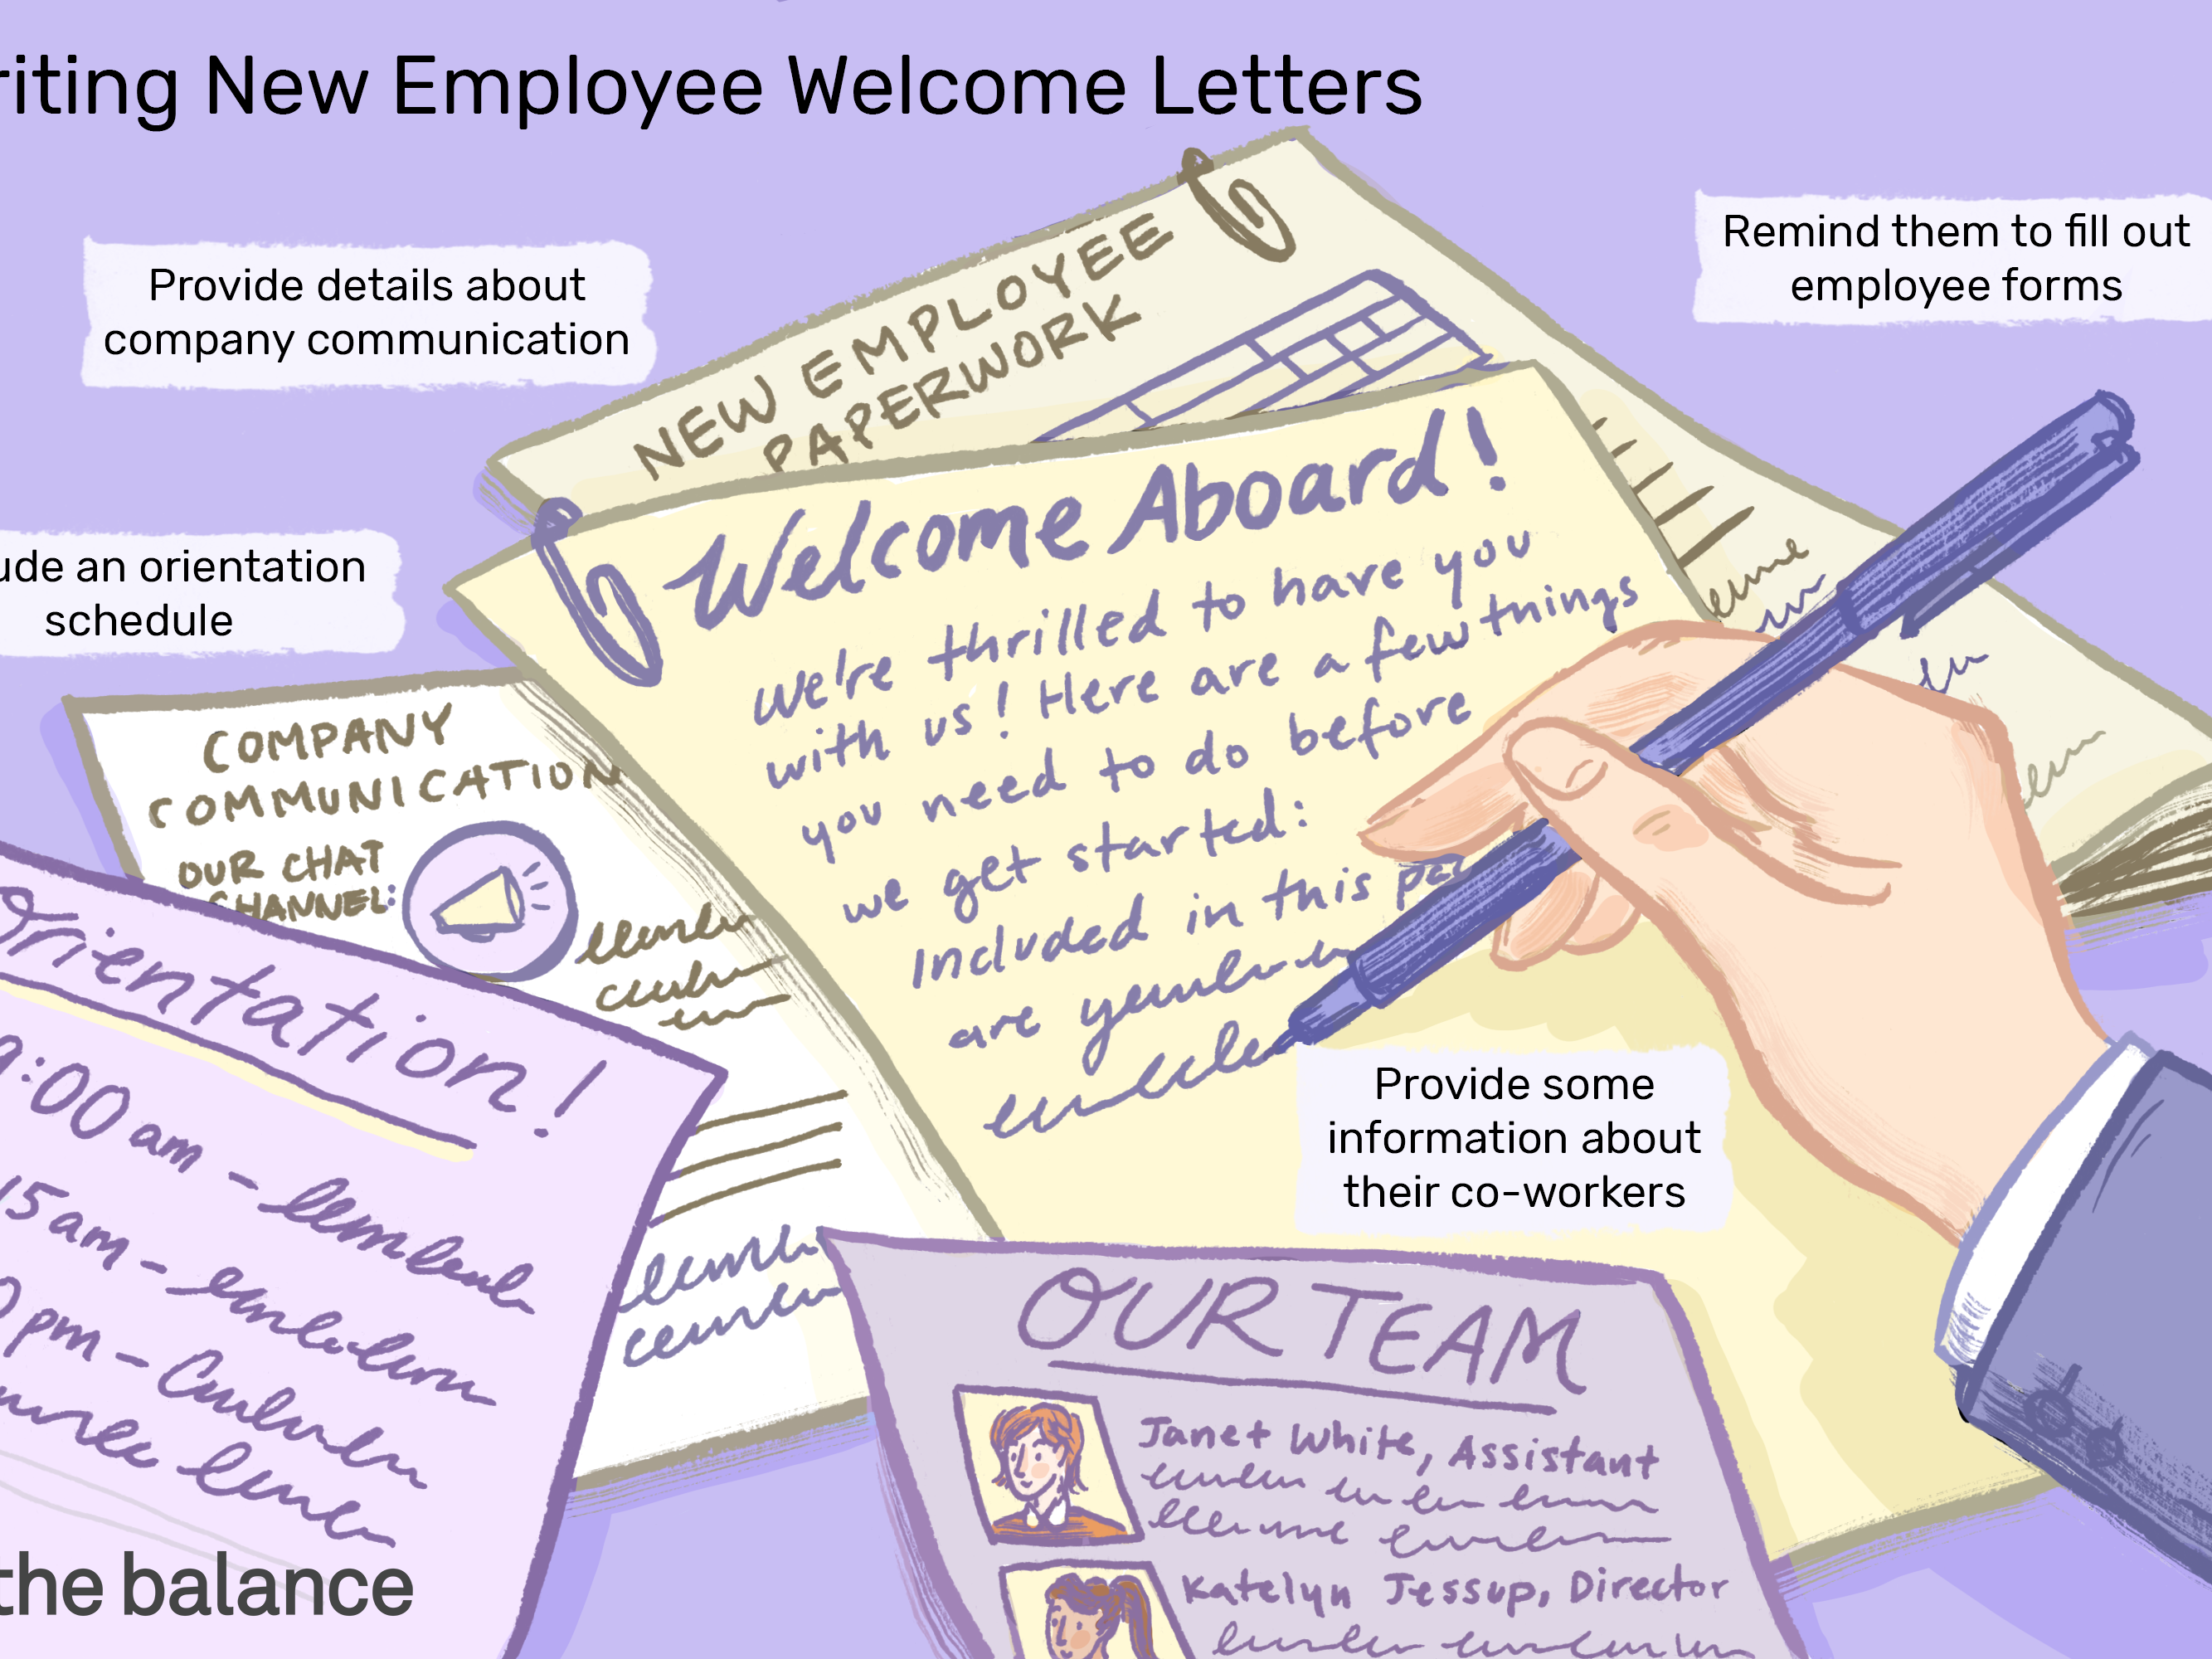 New Patient Welcome Letter Template from www.thebalancecareers.com